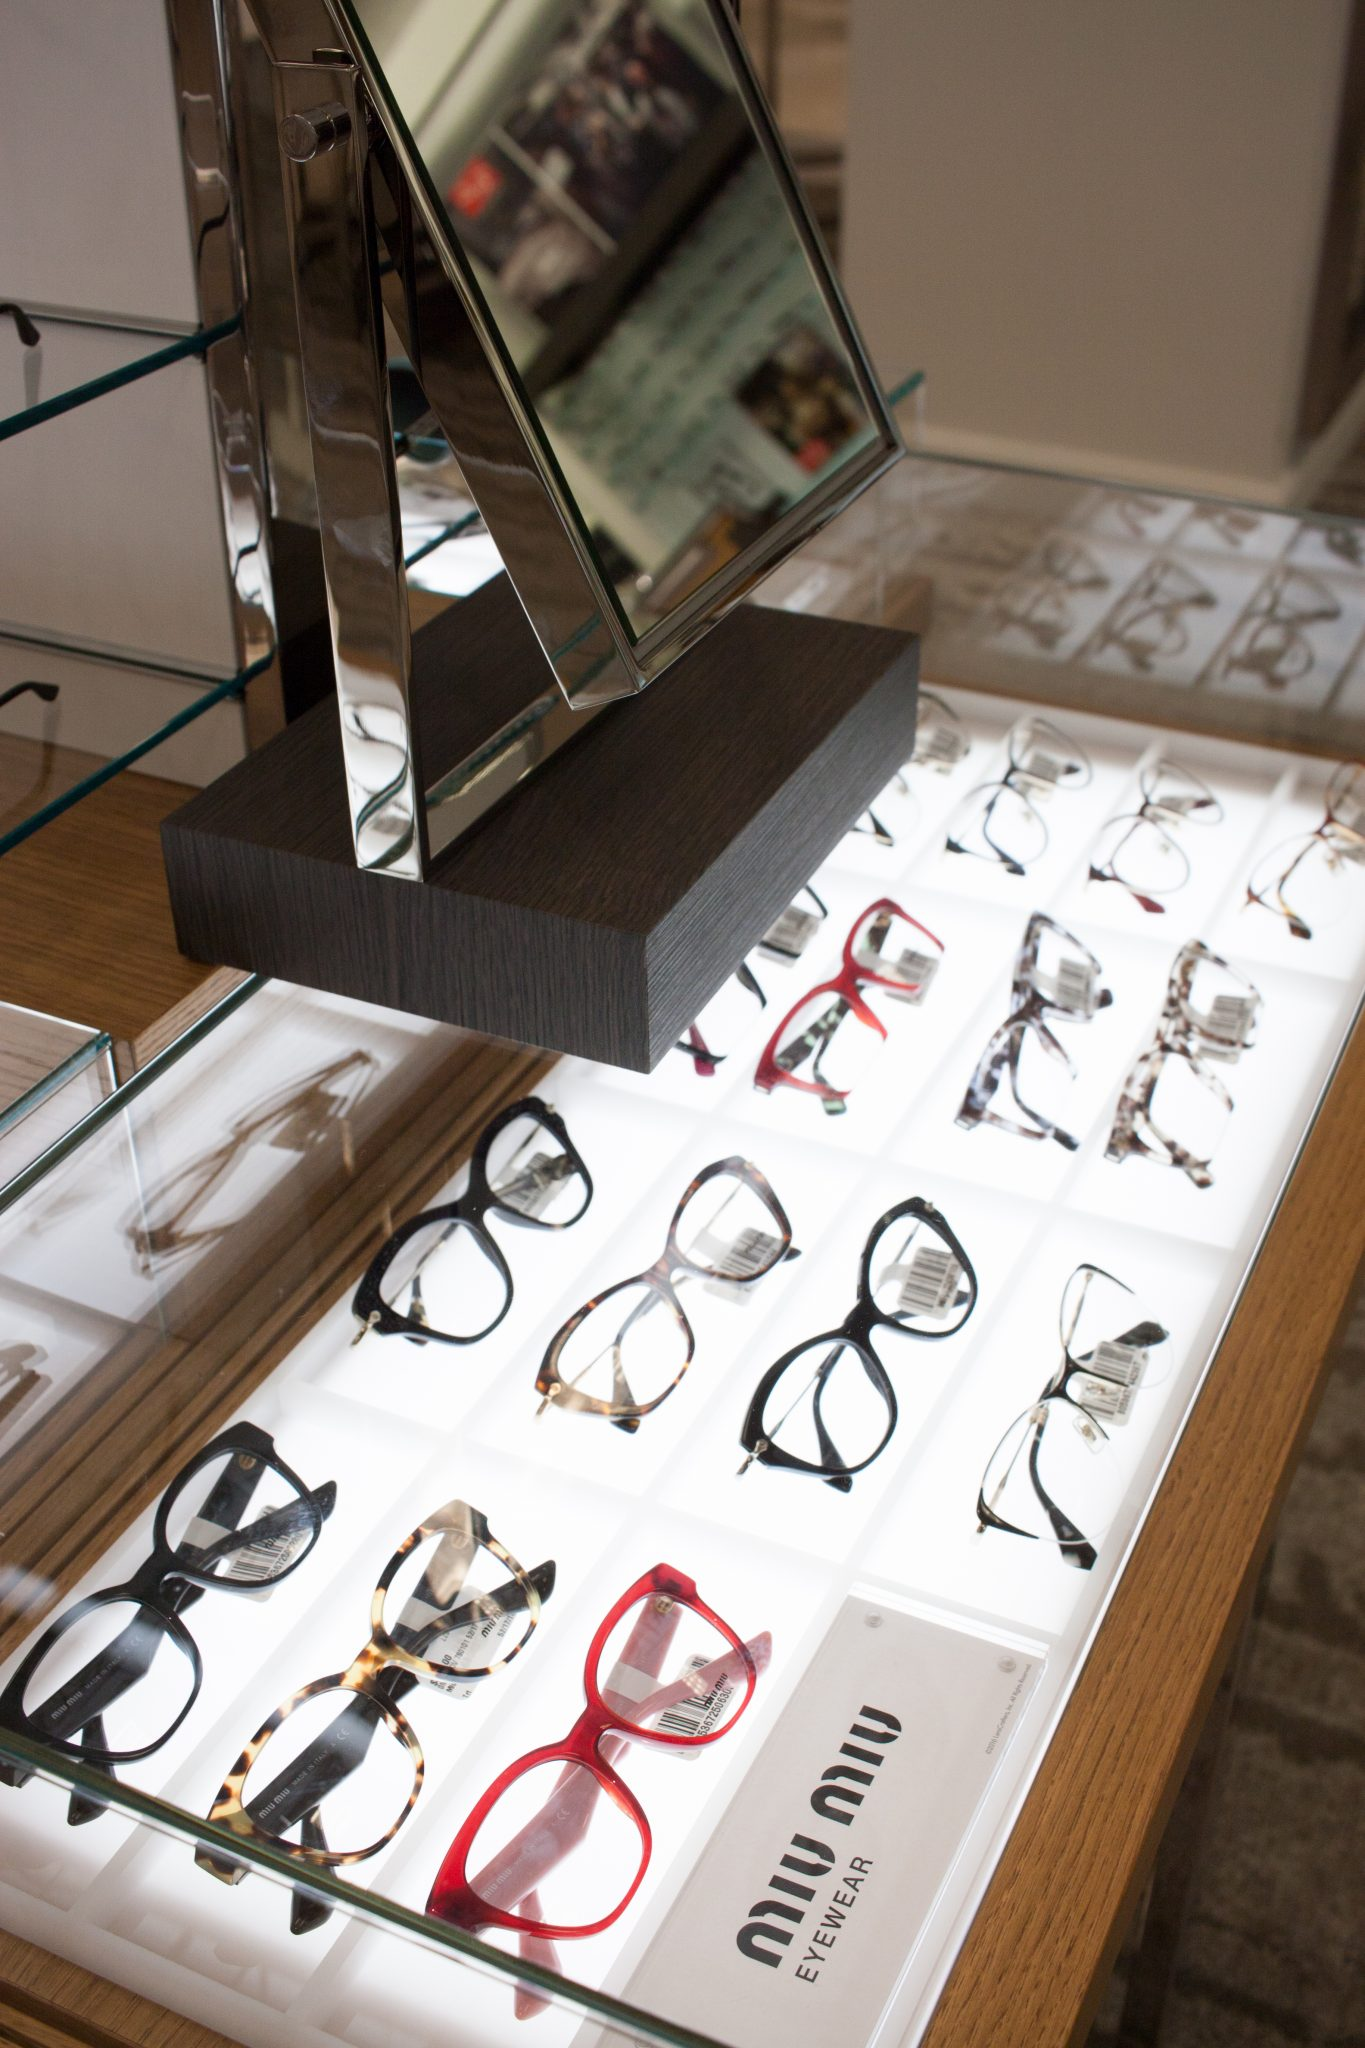 15cad98729 lenscrafters in macys at lenox mall